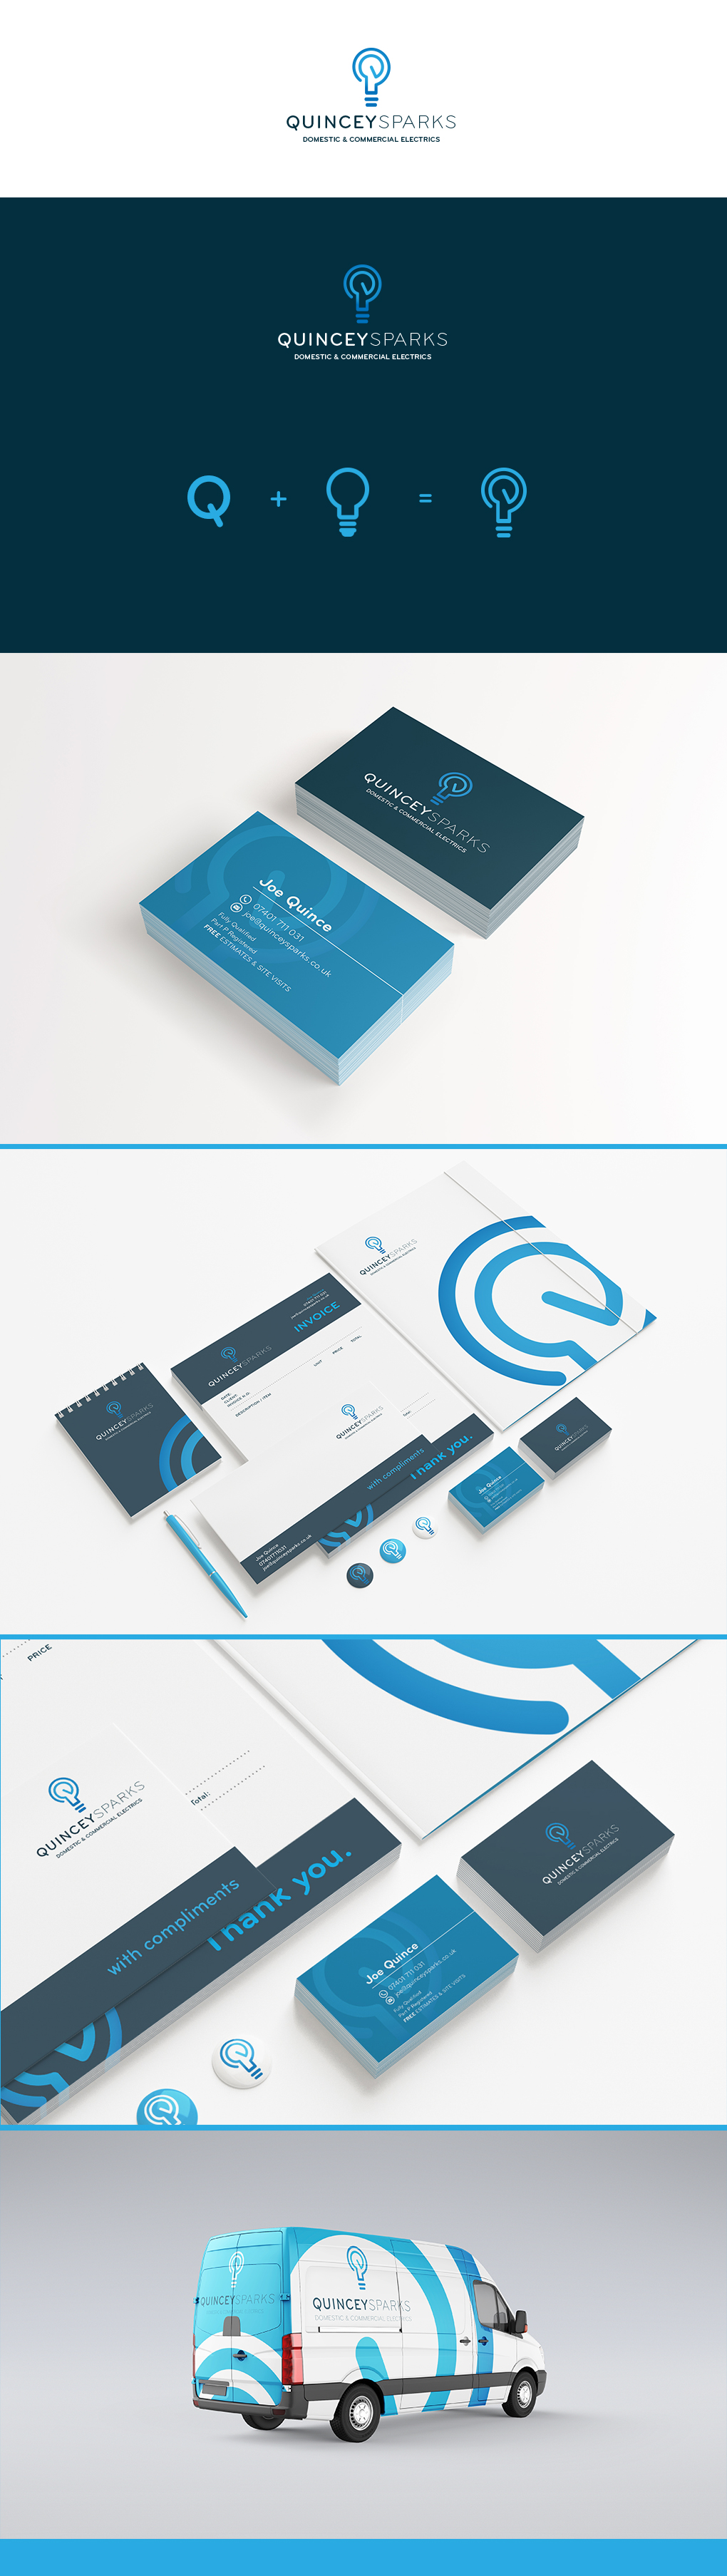 Quincey Sparks Logos, Stationery and Vehicle Branding